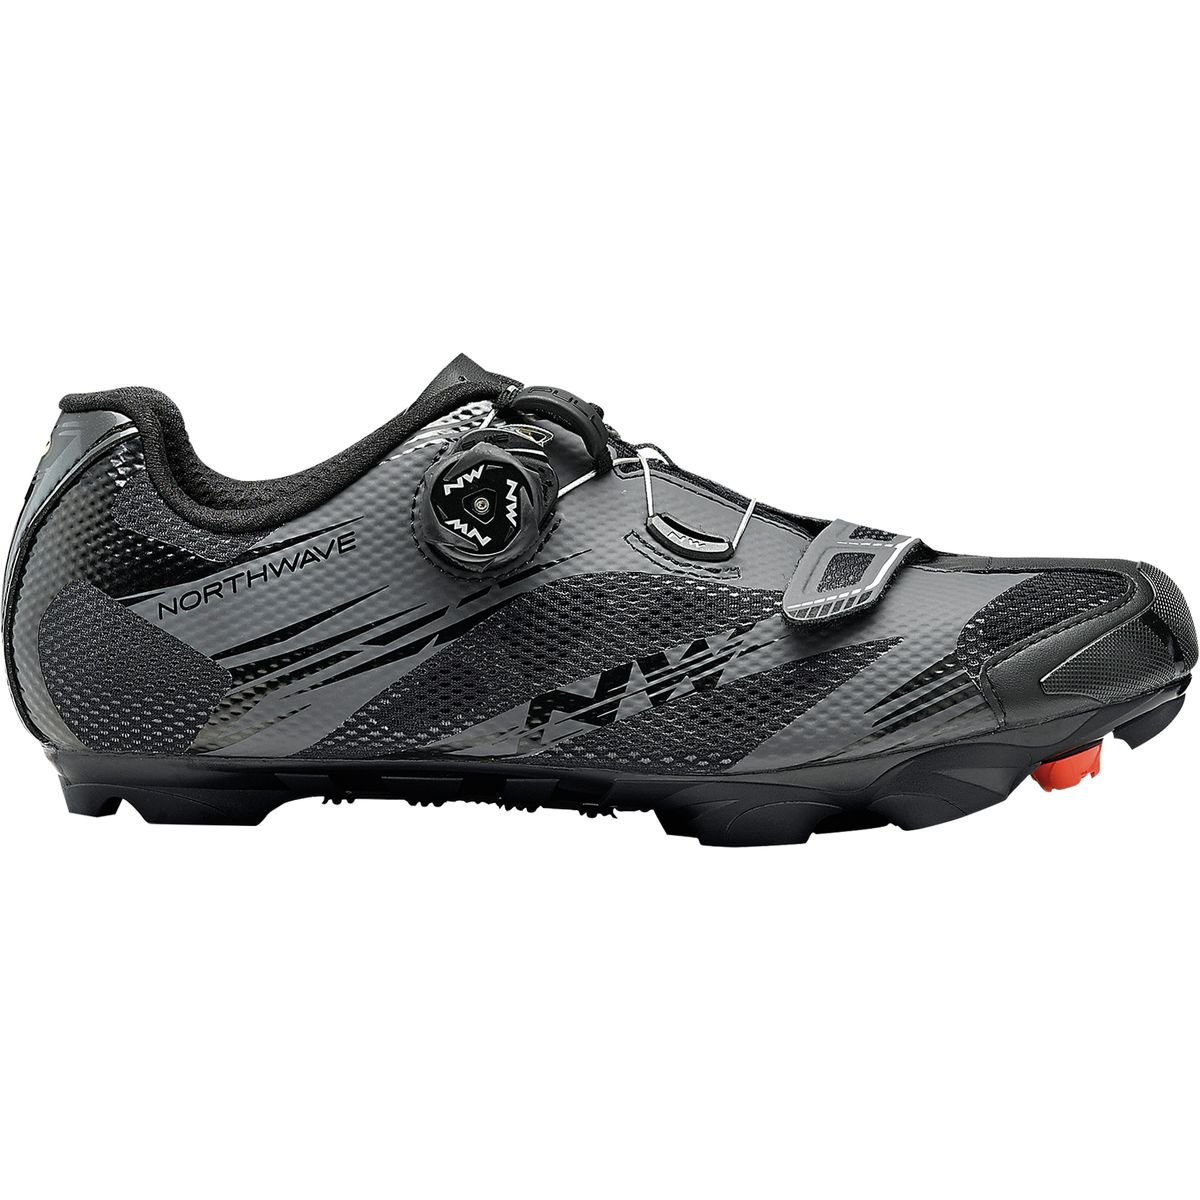 Northwave Scorpius 2 Plus Wide Cycling Shoe - Men's 40.0